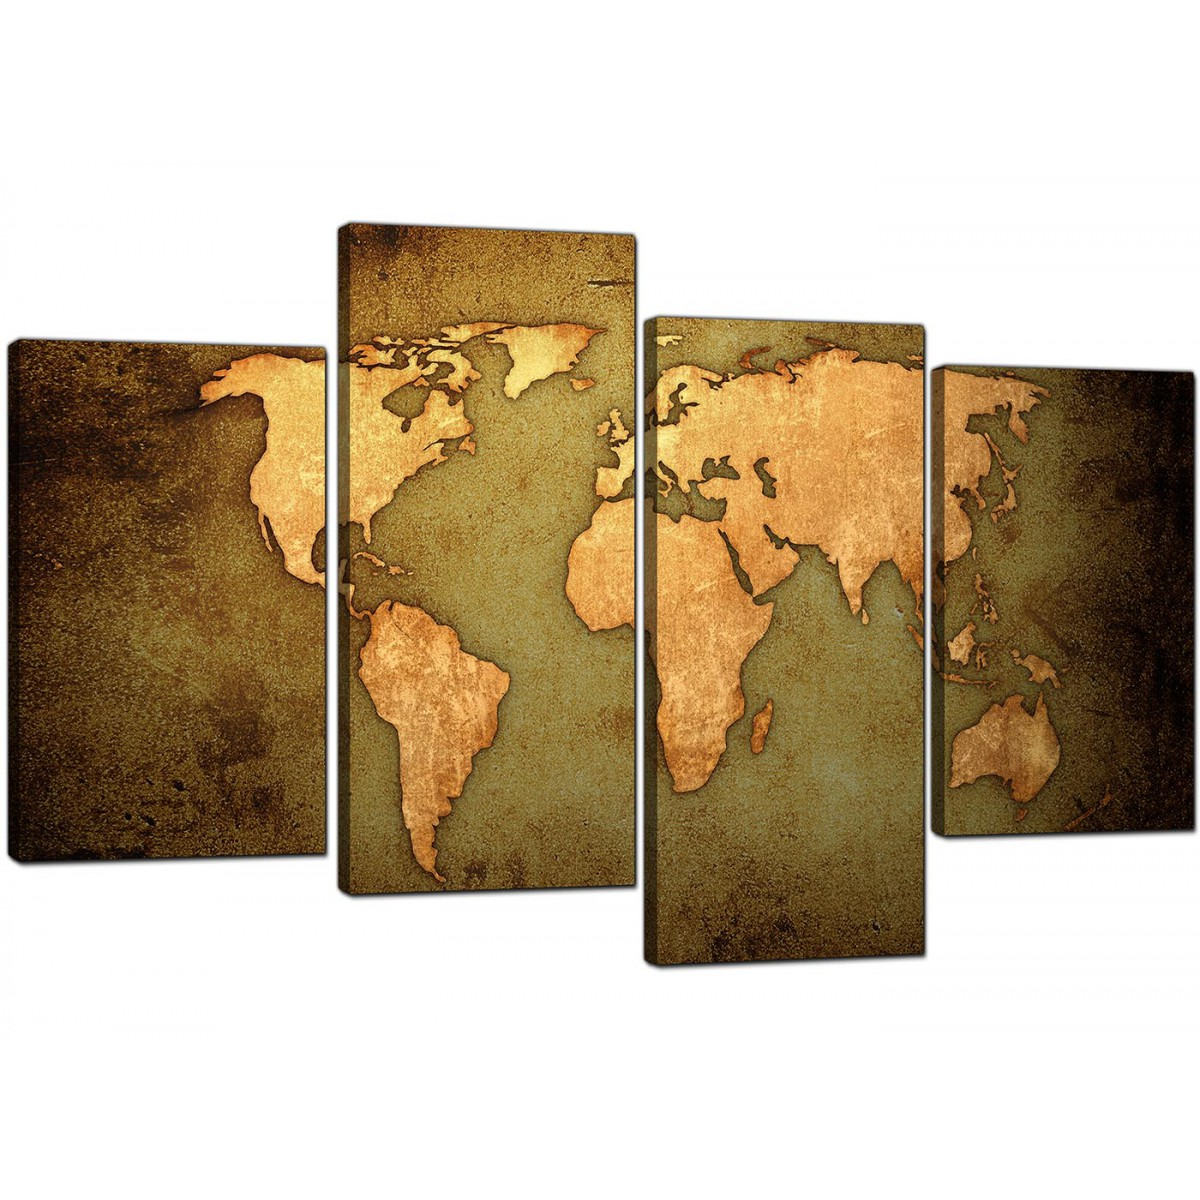 Canvas prints of a world map in green and brown for your living room overall size 130cm x 67cm gumiabroncs